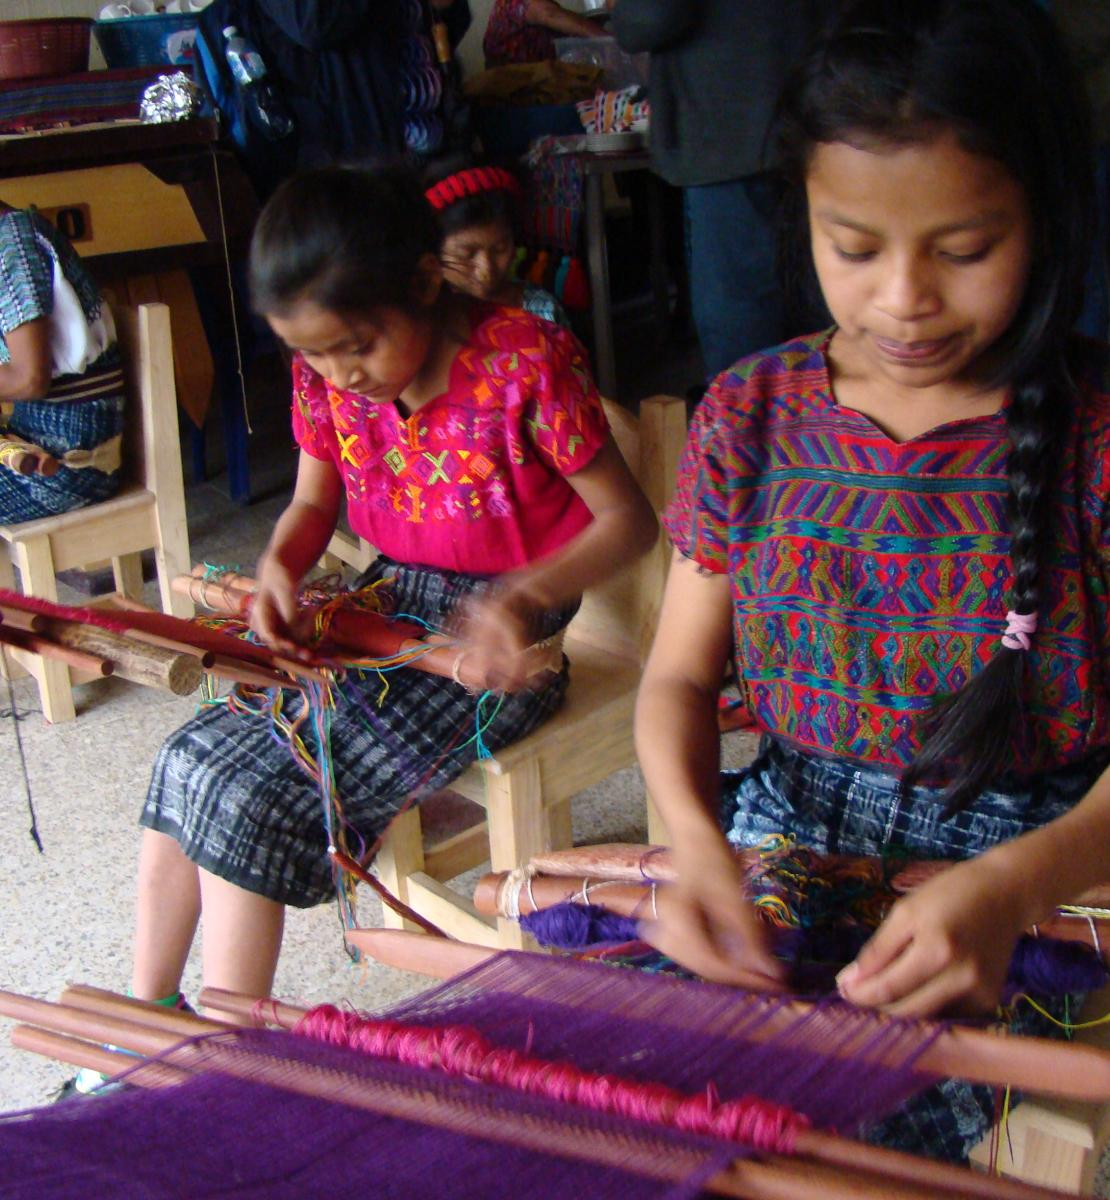 Photo showing three indigenous girls sitting on a chair and learning to weave using a traditional loom